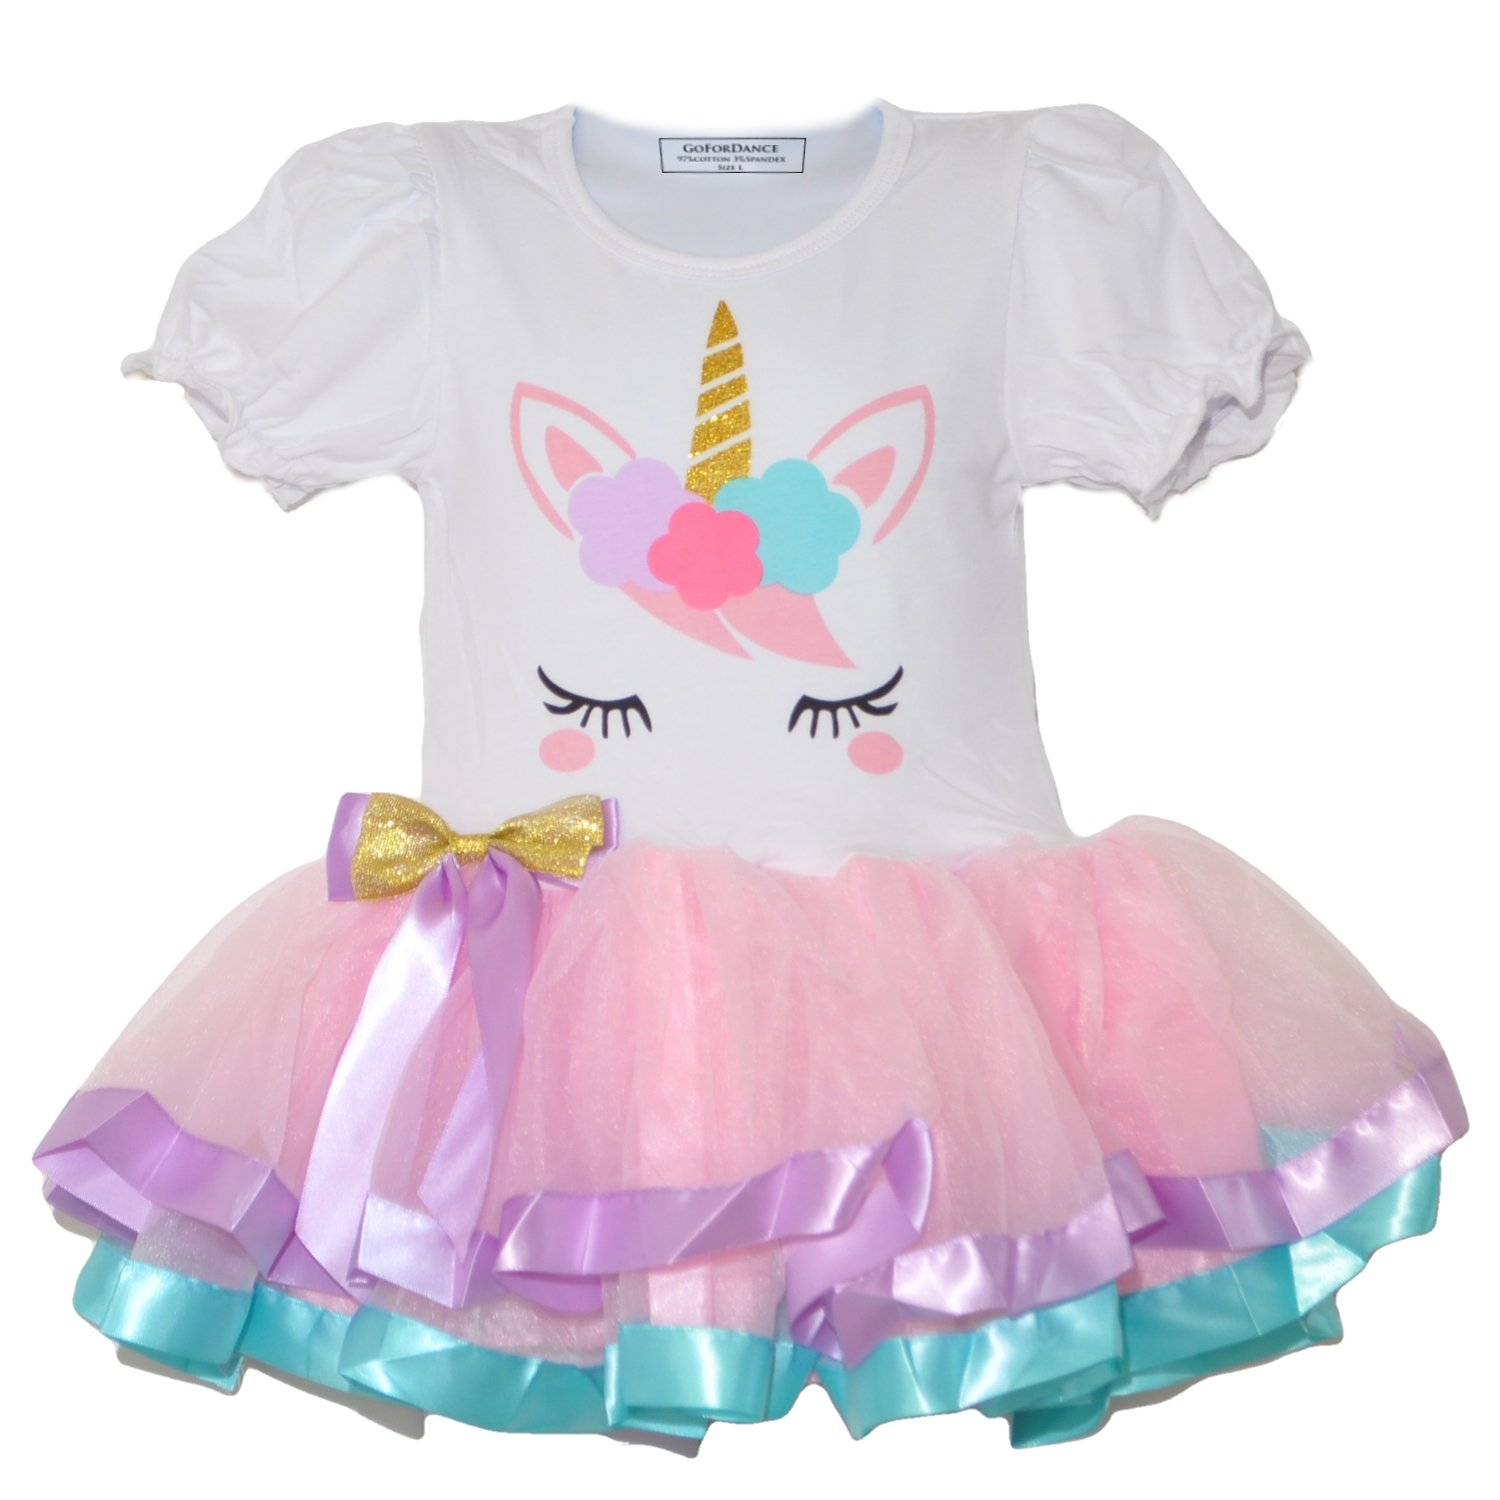 GoForDance Unicorn Puff Short Sleeve 3 Layers Tulle Tutu Ribbon Trim Girl's Party Dress (Small, Pink)